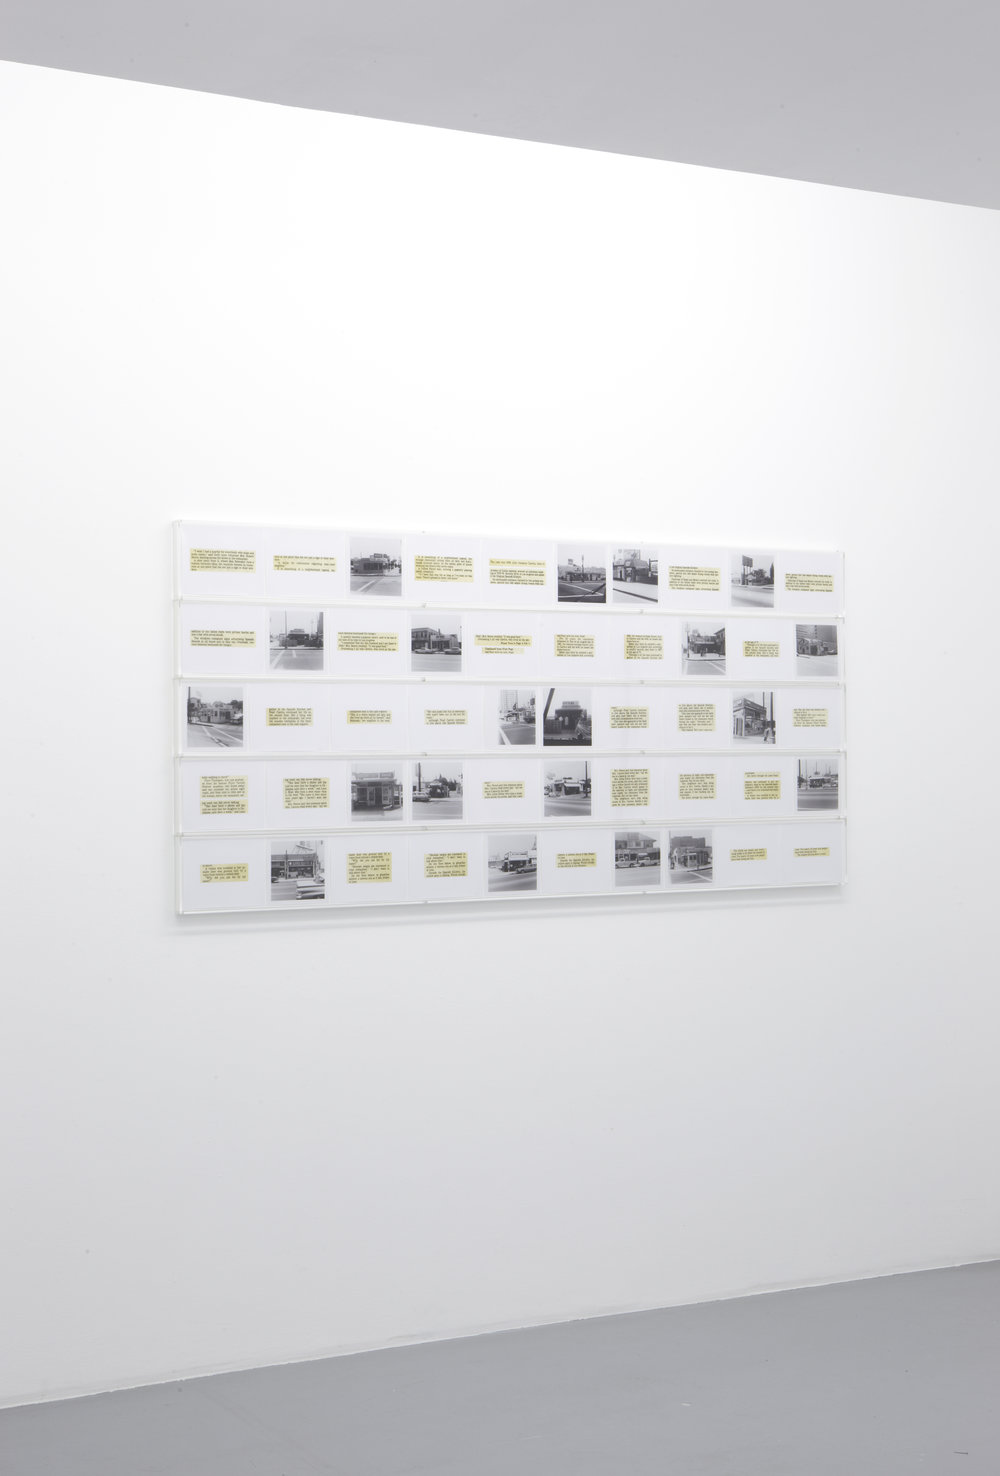 Allen Ruppersberg, Once Upon A Time in Southern California (LA in the 70s), 2010 50 lightjet prints, 5 plexiglas boxes ed. 2/3 92,5 x 197 cm - 36 3/8 x 77 1/2 inches